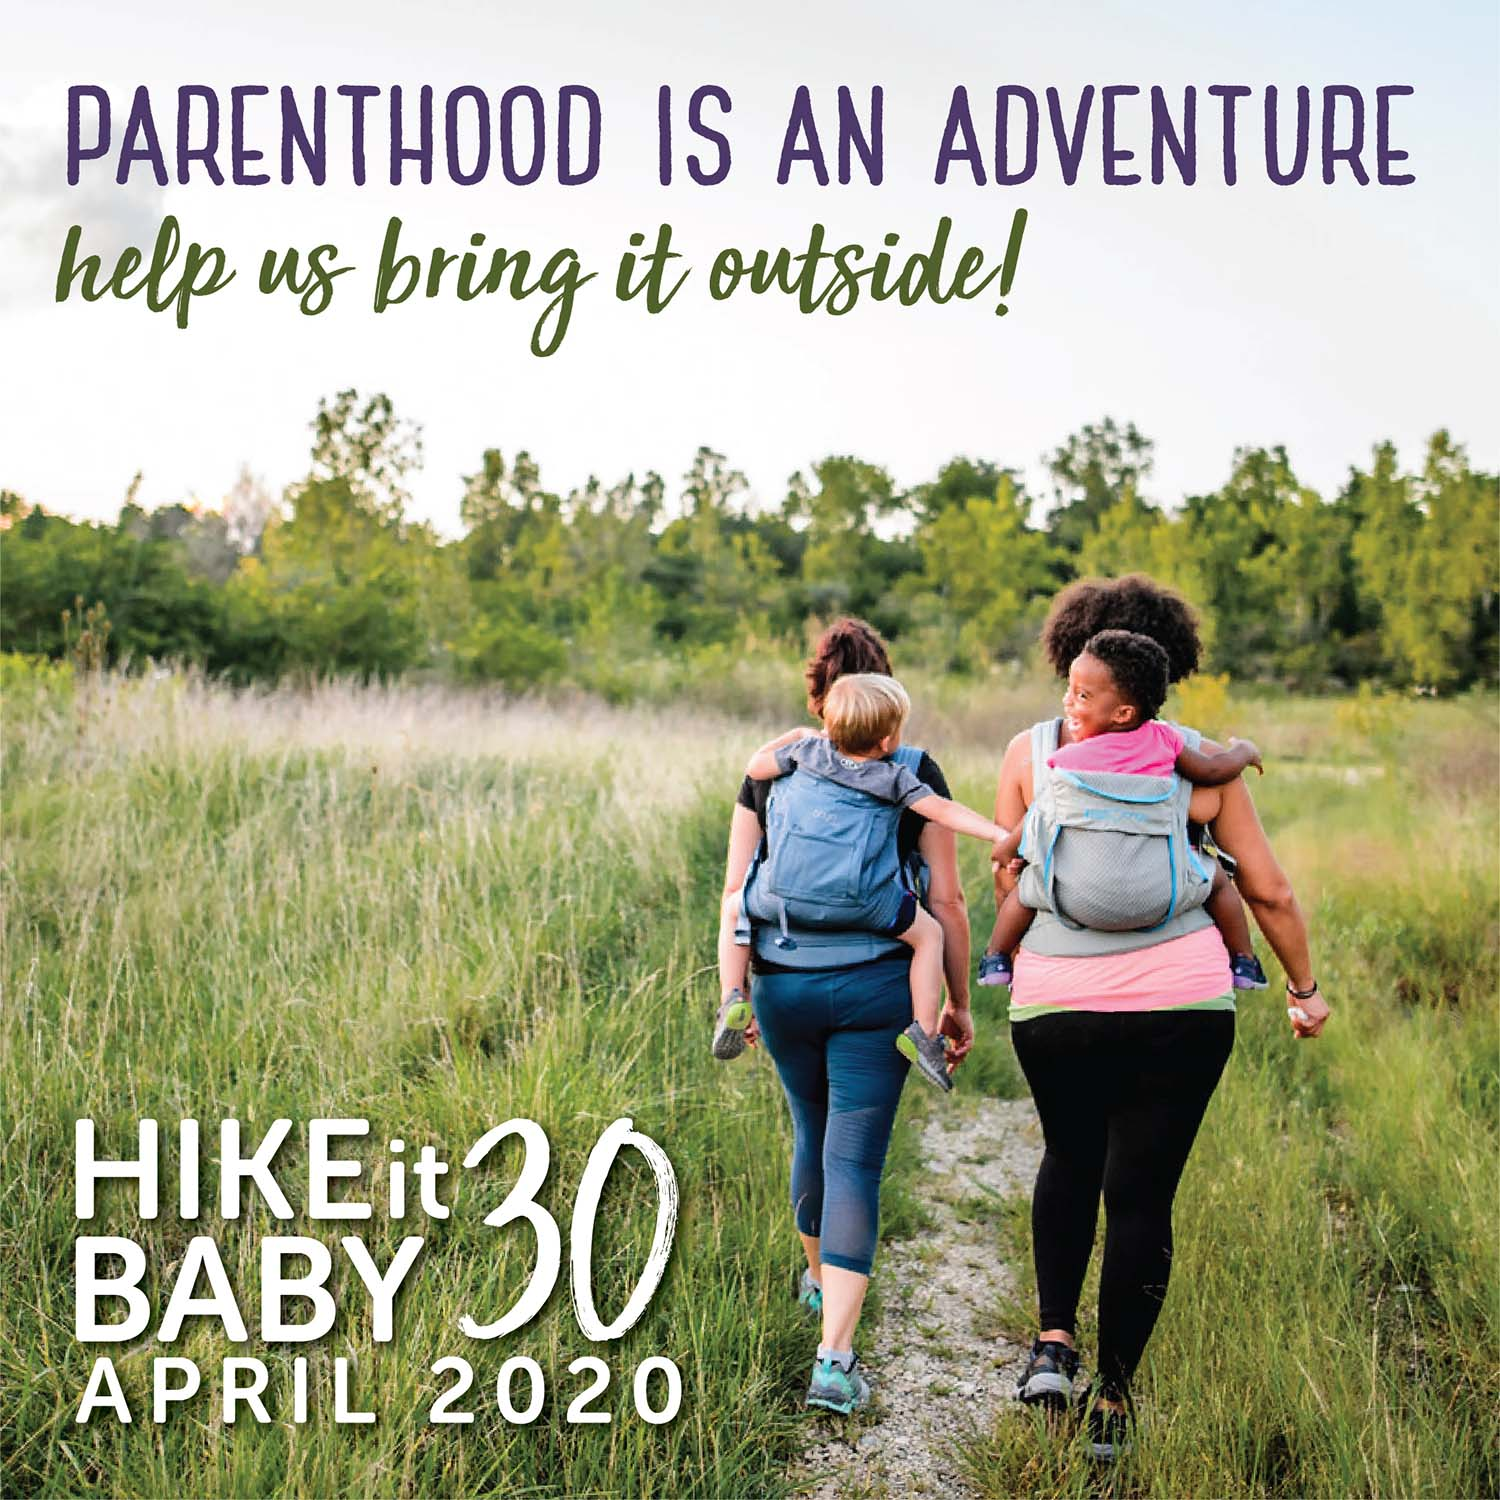 HIKE IT BABY 30 APRIL